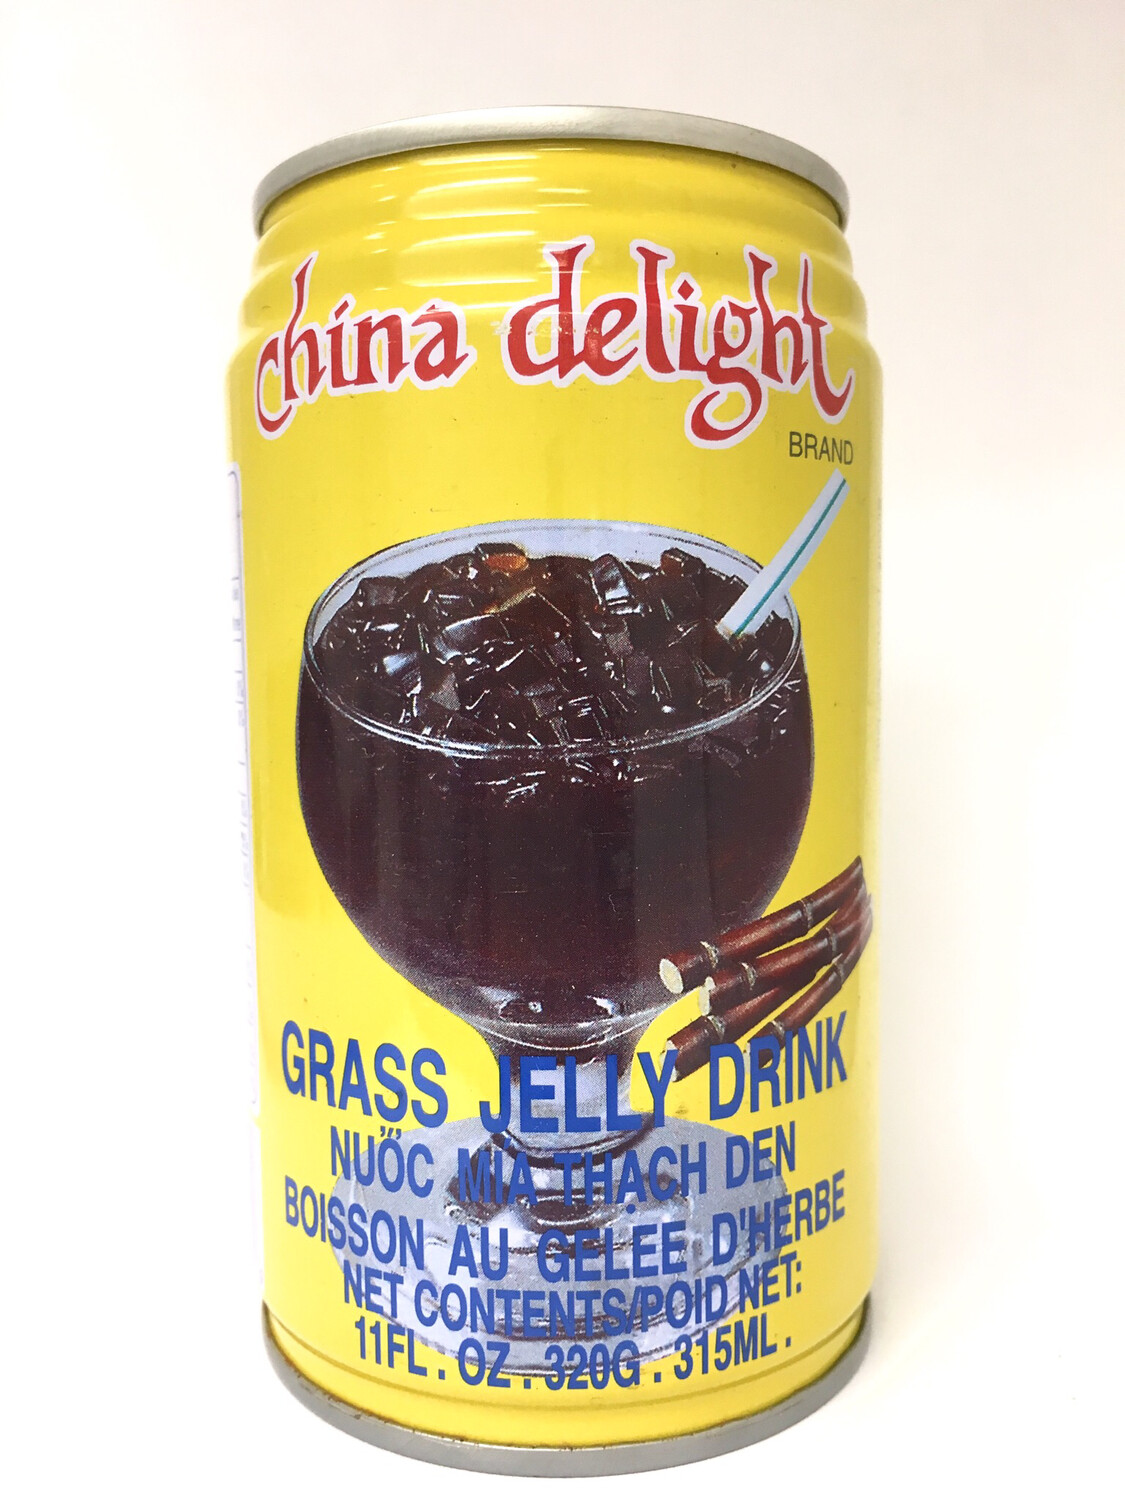 CHINA DELIGHT GRASS JELLY DRINK 24X320G